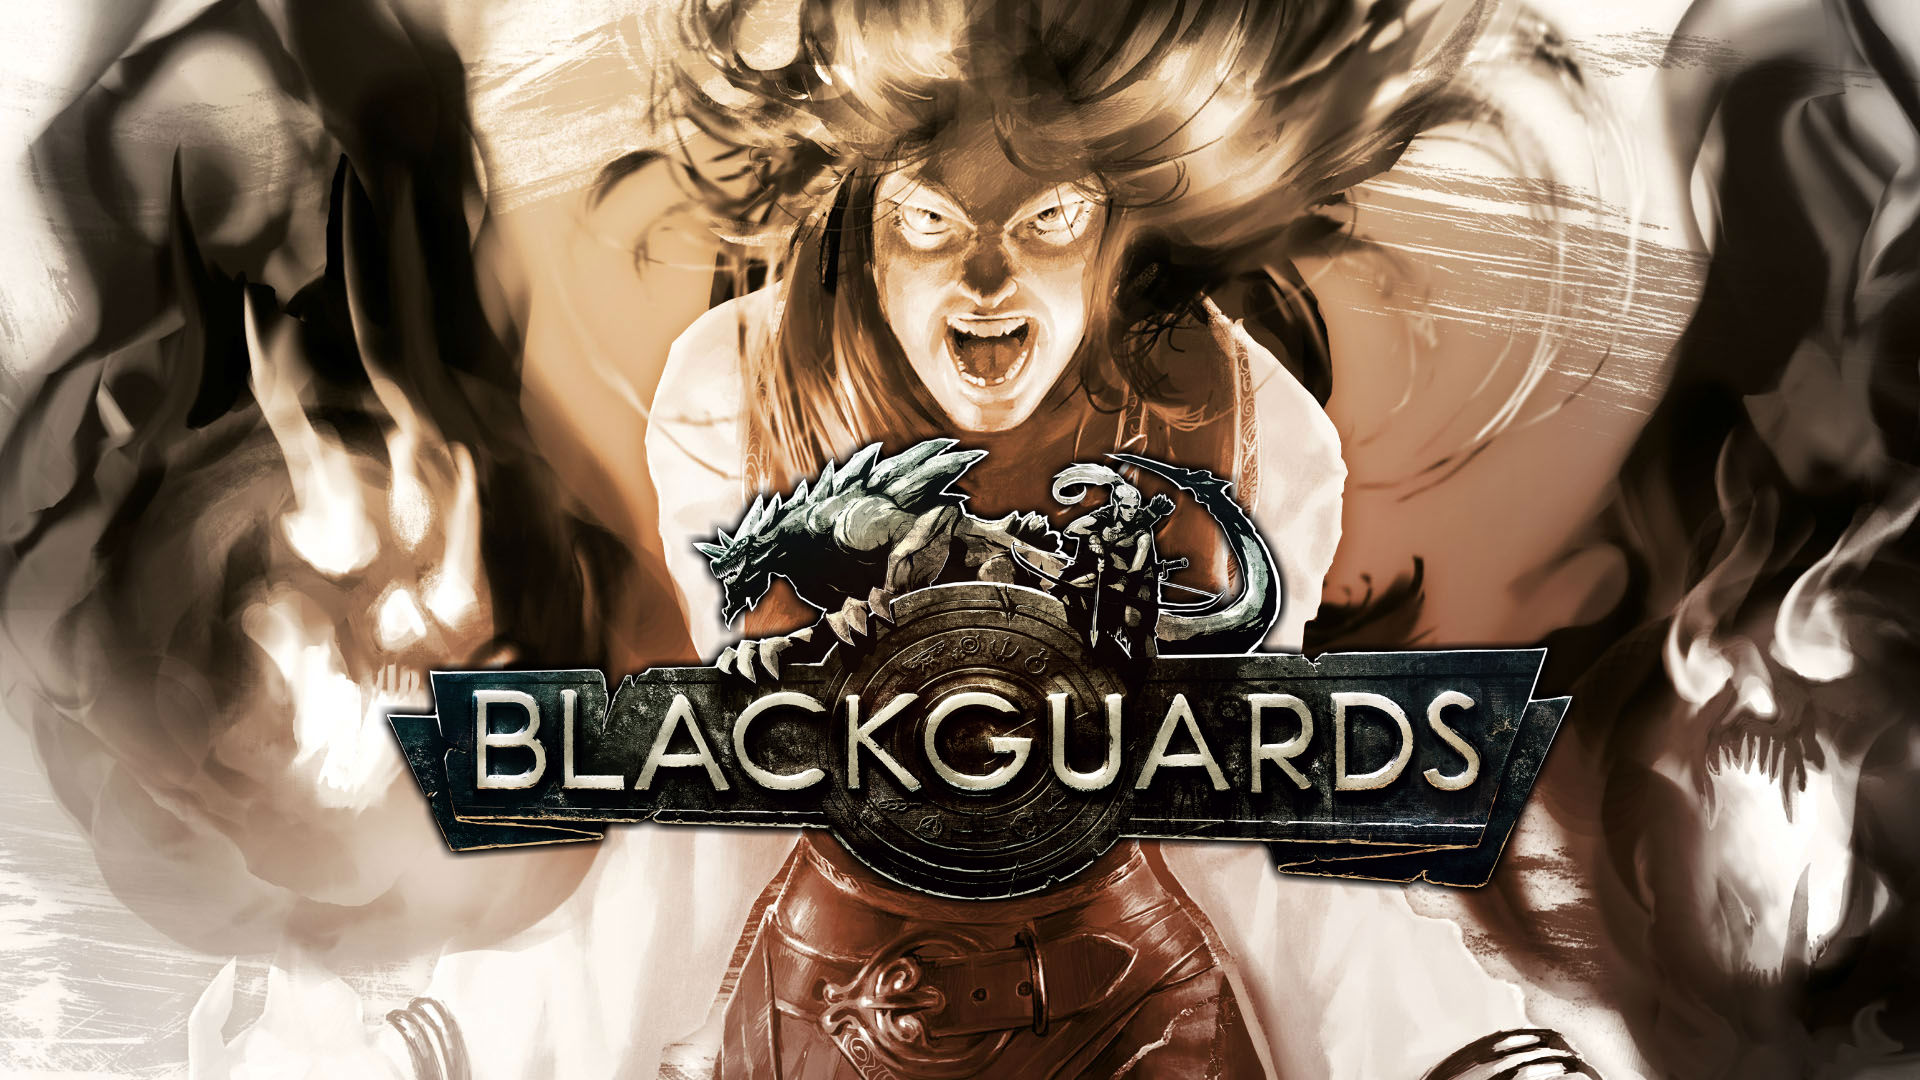 Blackguards Definitive Edition Coming to PlayStation 4 and Xbox One